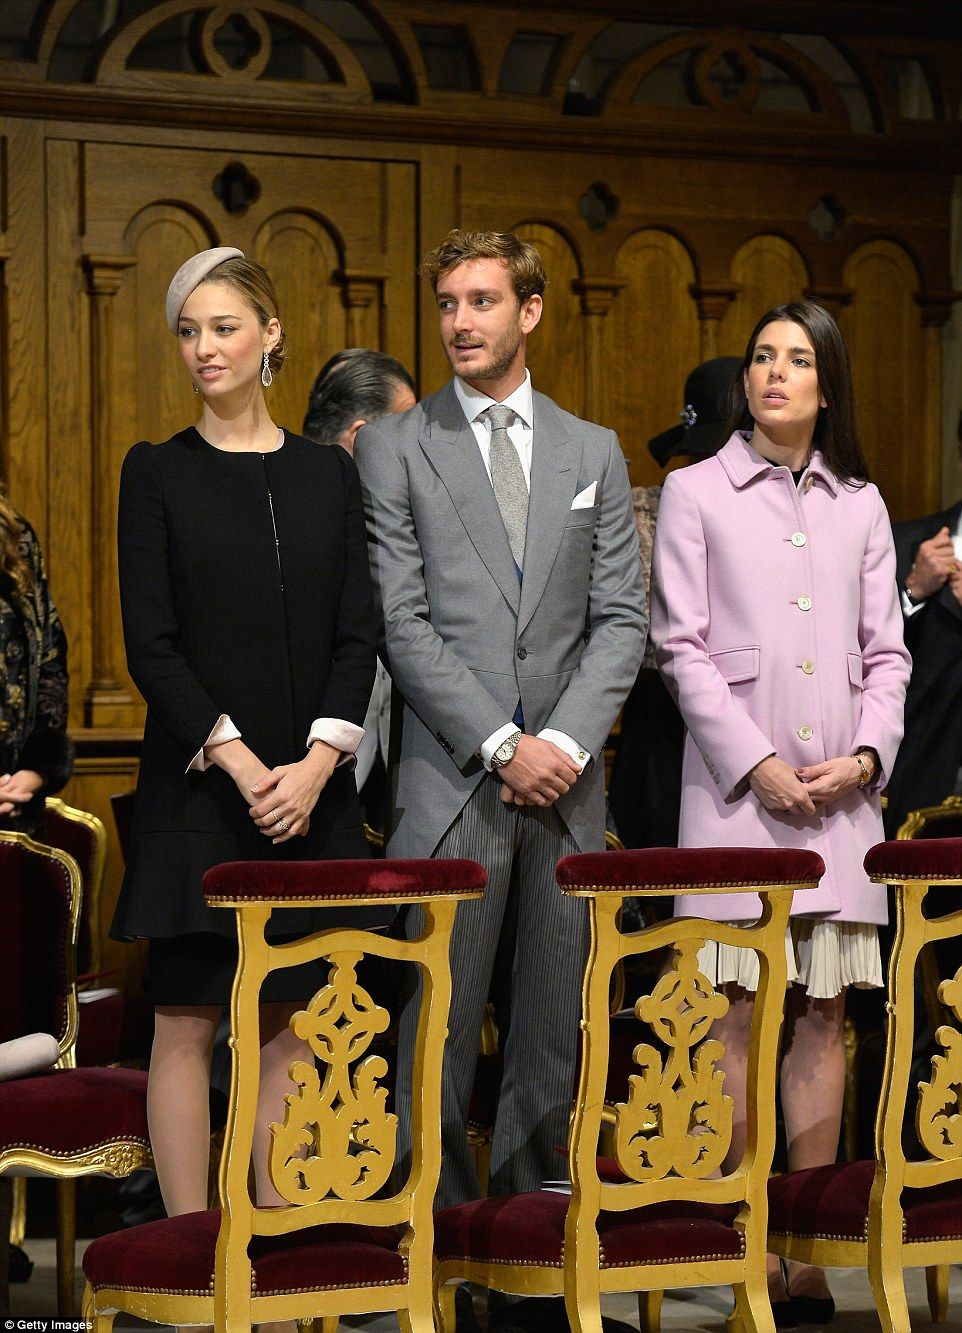 (L-R) Beatrice Borromeo,Pierre Casiraghi and Charlotte Casiraghi attend a mass at the Cathedral of Monaco together